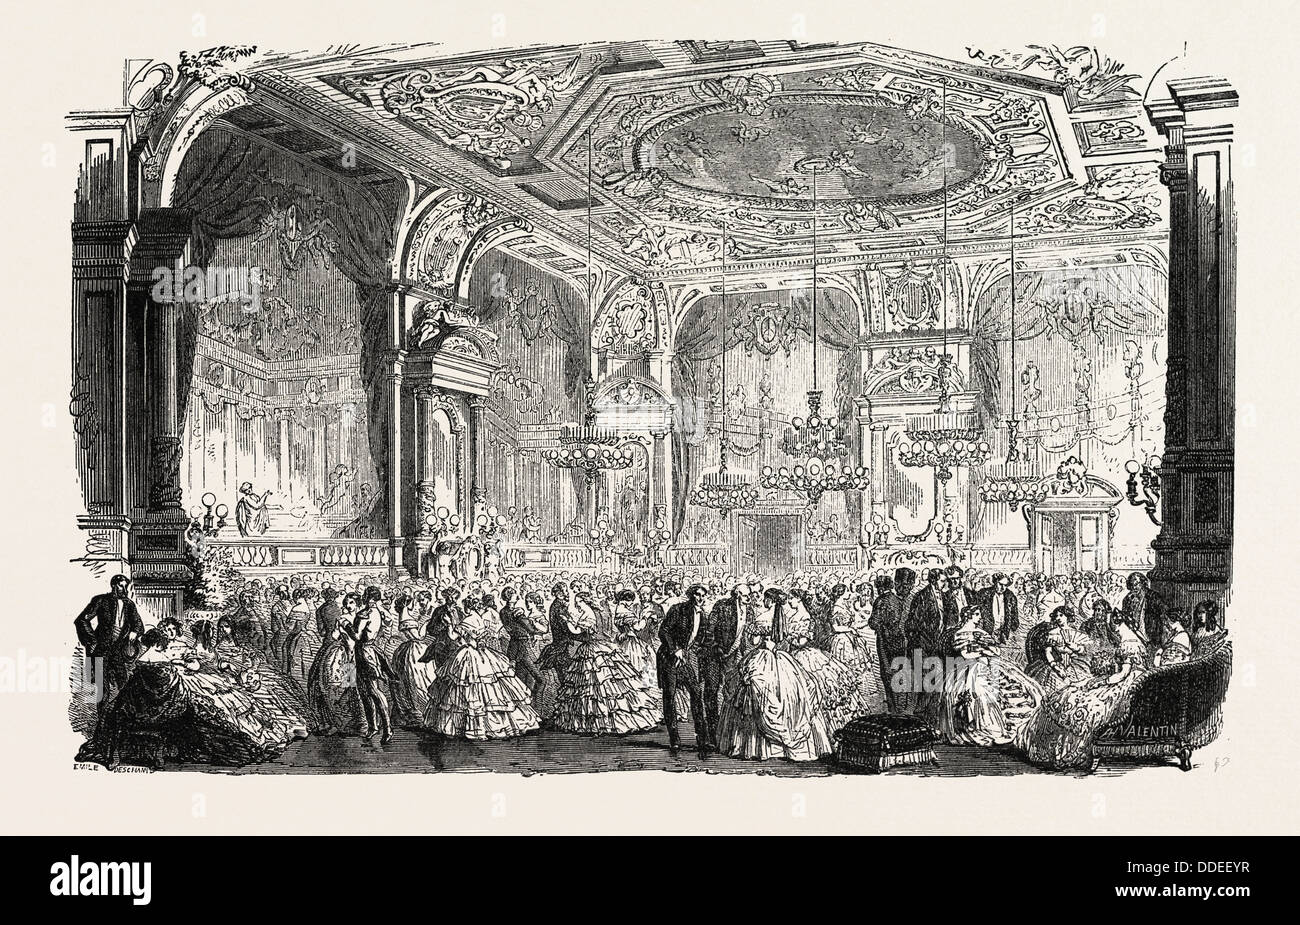 Palace of Versailles: The new dances and concerts hall. engraving 1855 - Stock Image